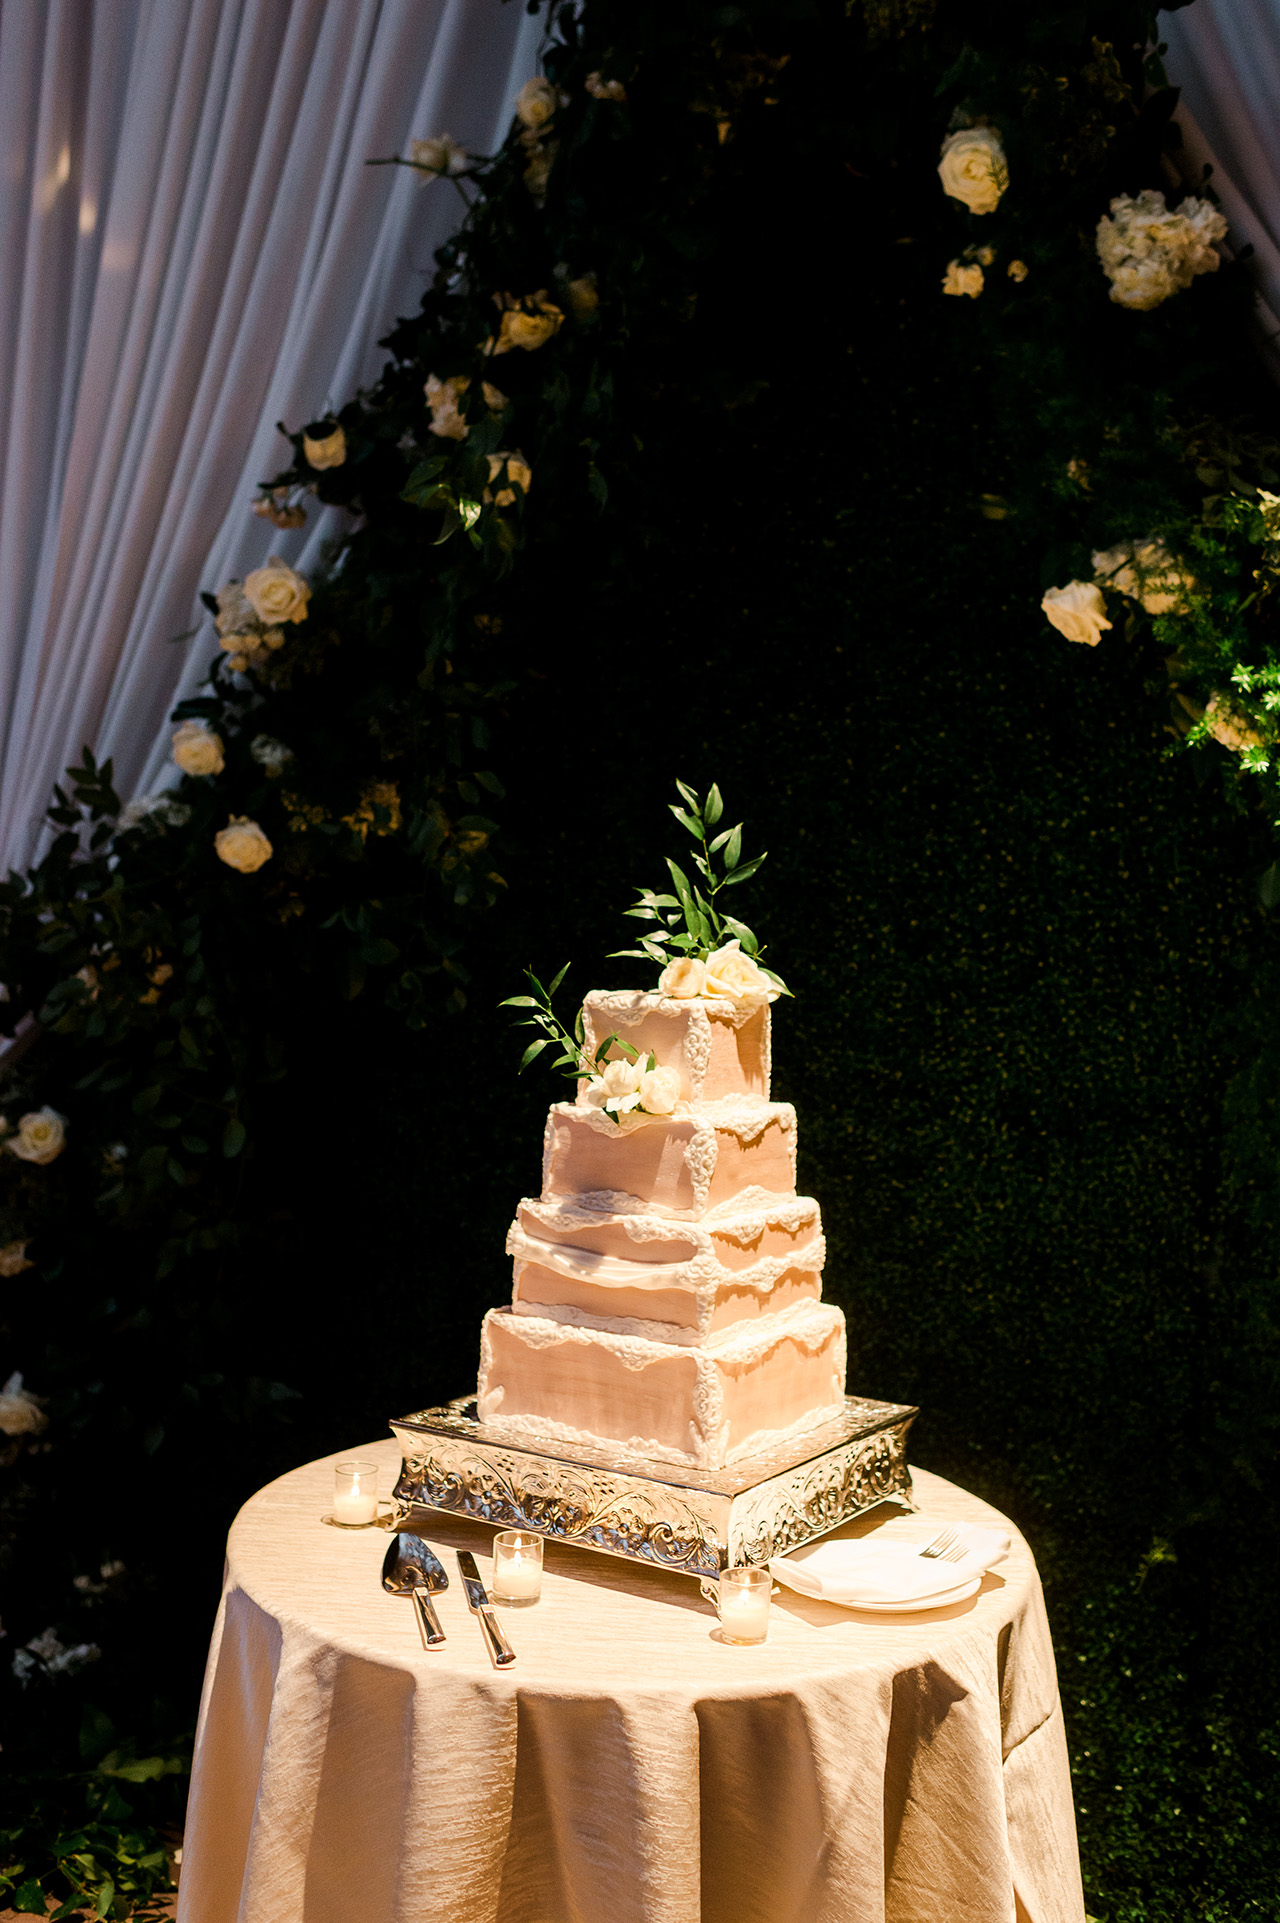 denita john wedding cake